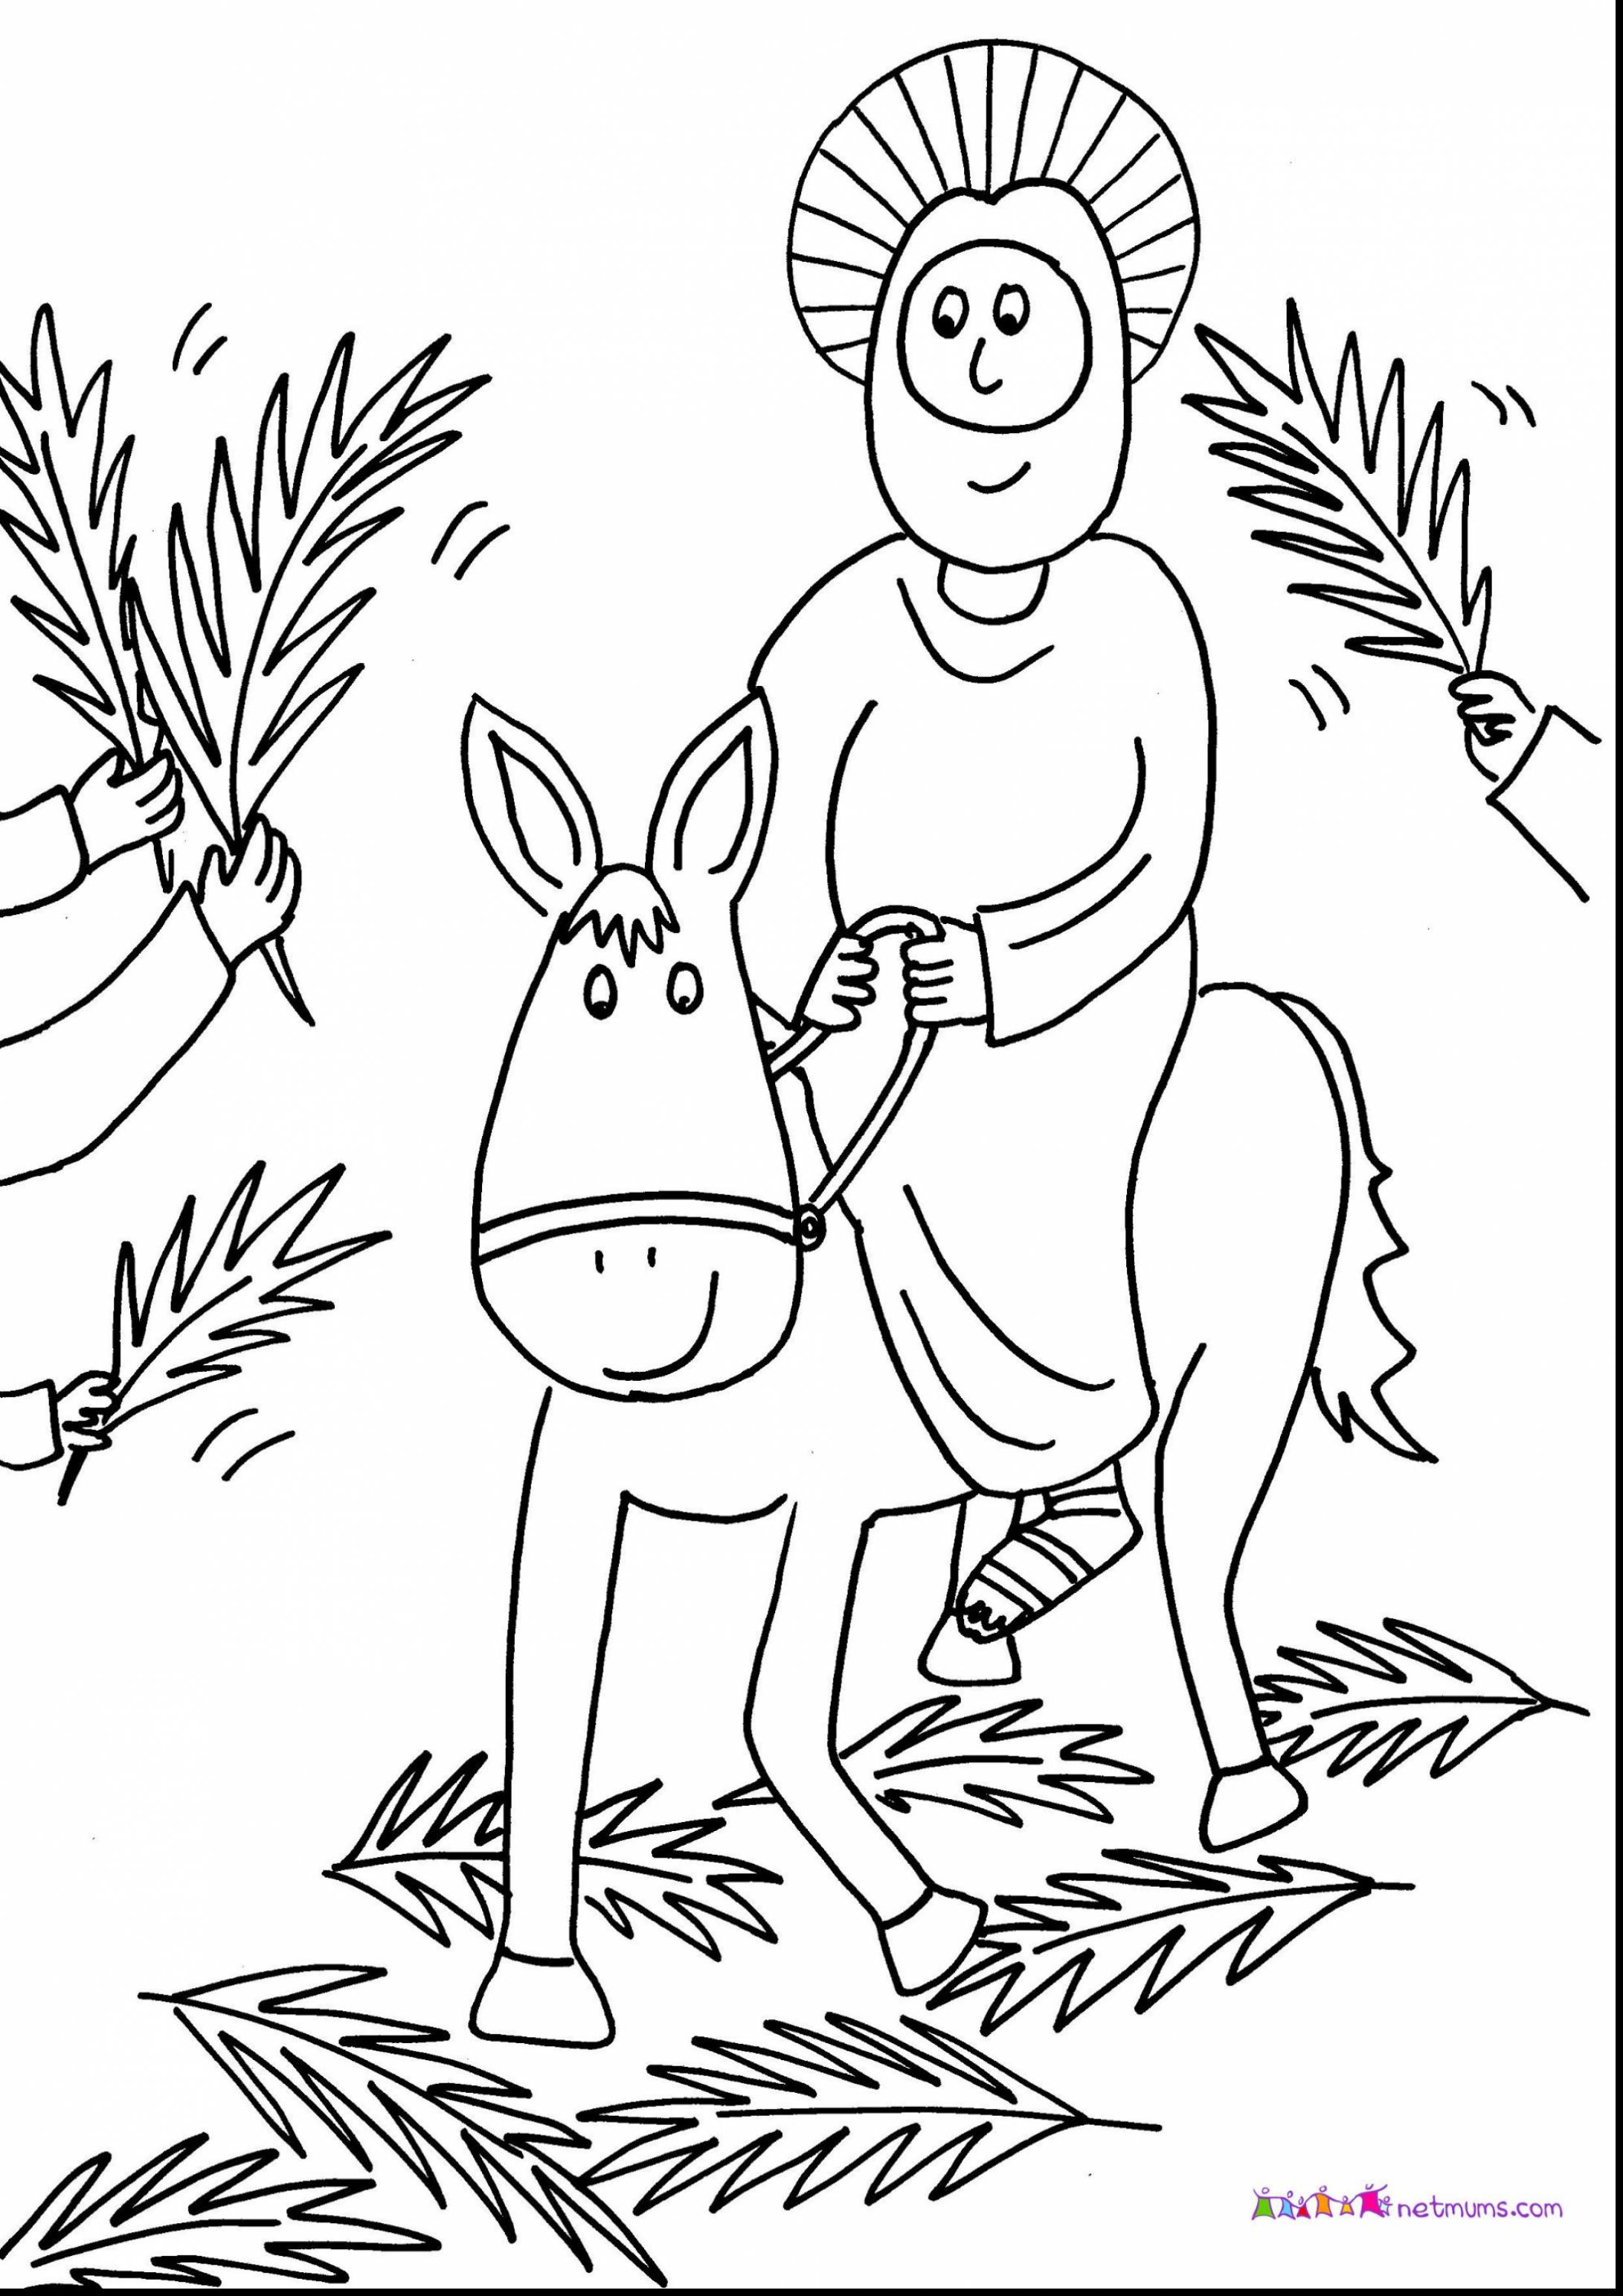 free sunday school coloring pages free printable sunday school coloring pages excellent pages coloring school free sunday